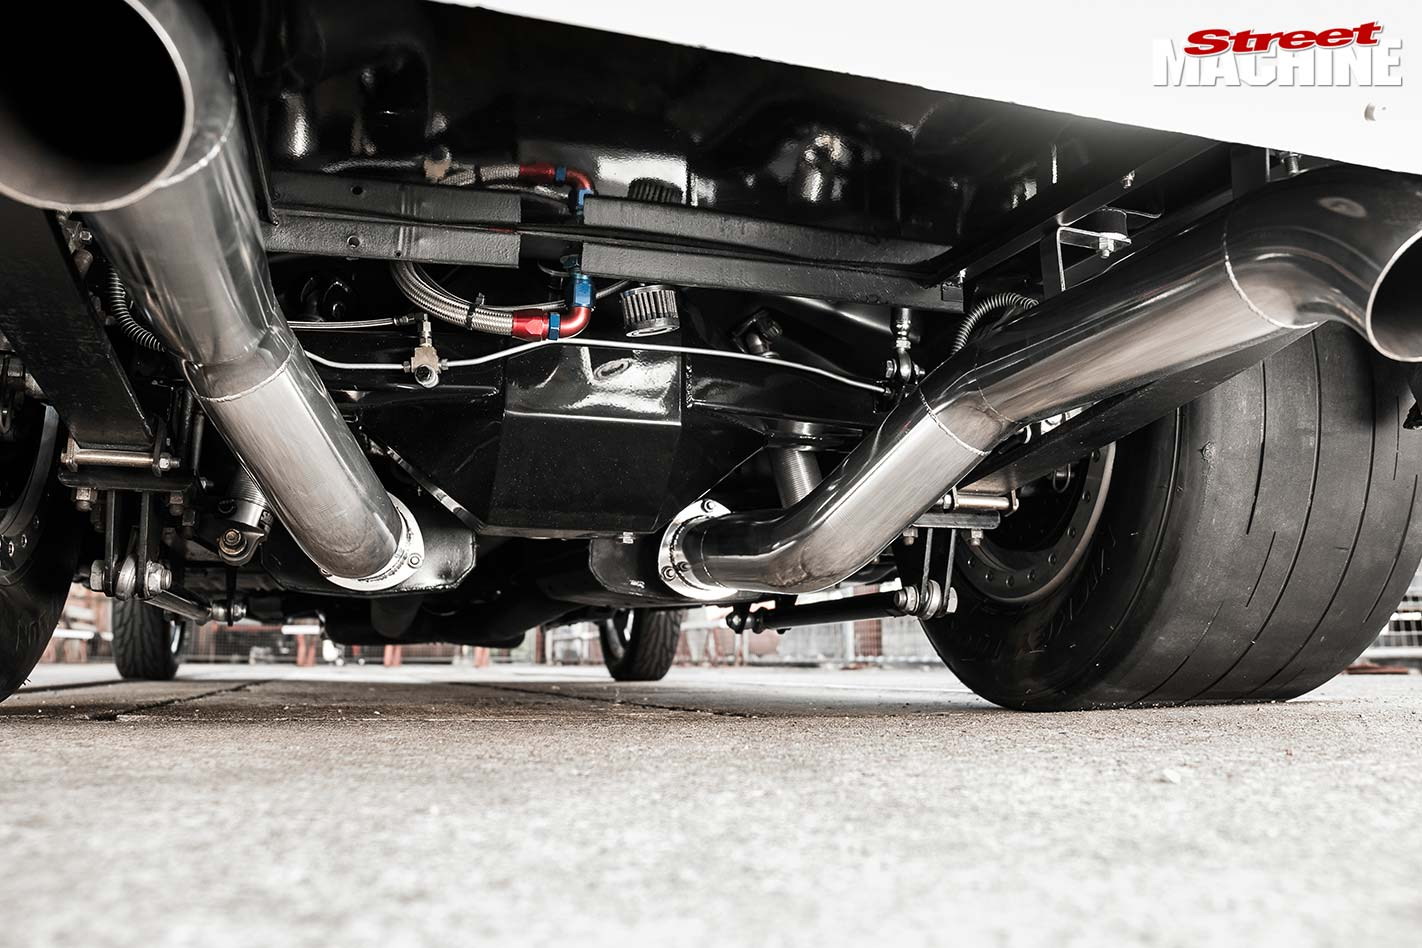 Ford Mustang exhaust